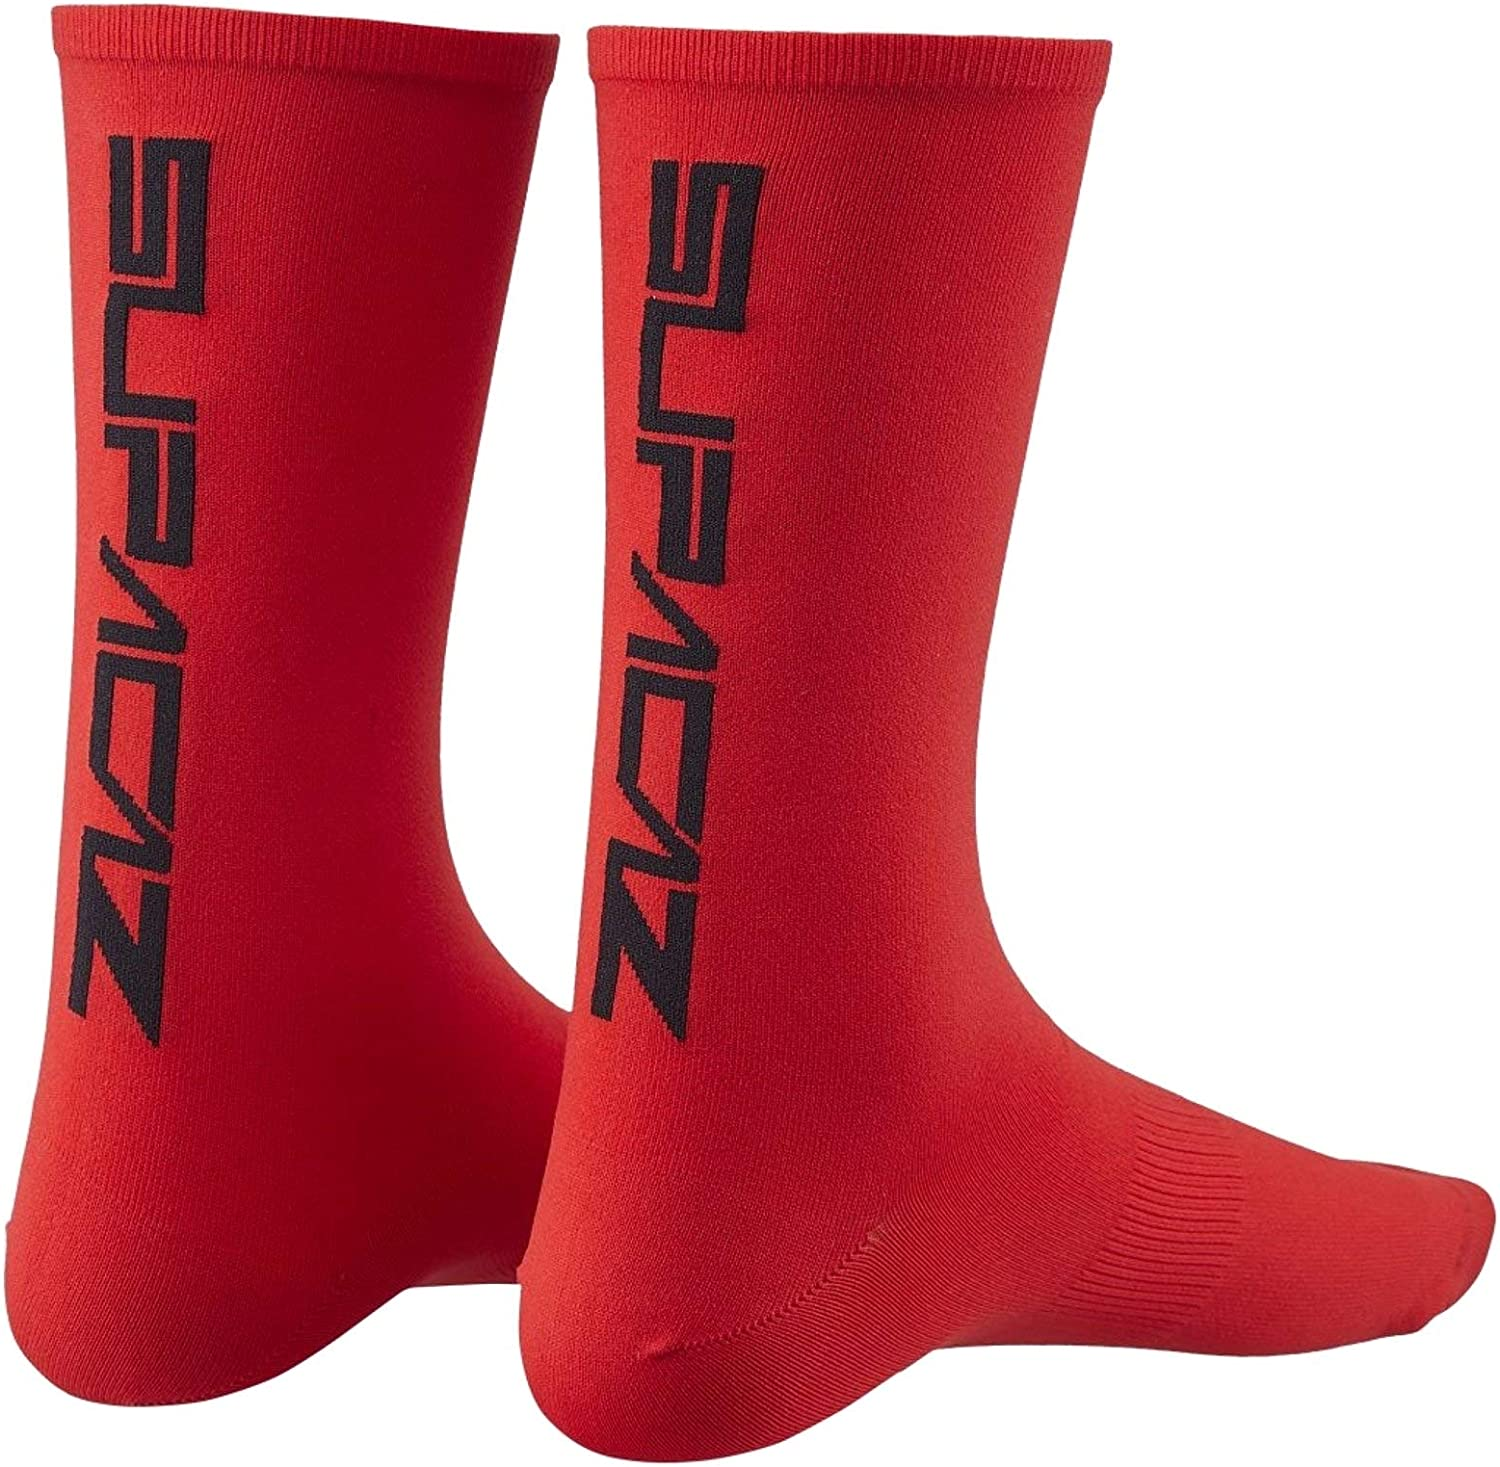 Supacaz Socks Red-L/XL Calcetines de ciclismo, Rojo, Estandar para ...